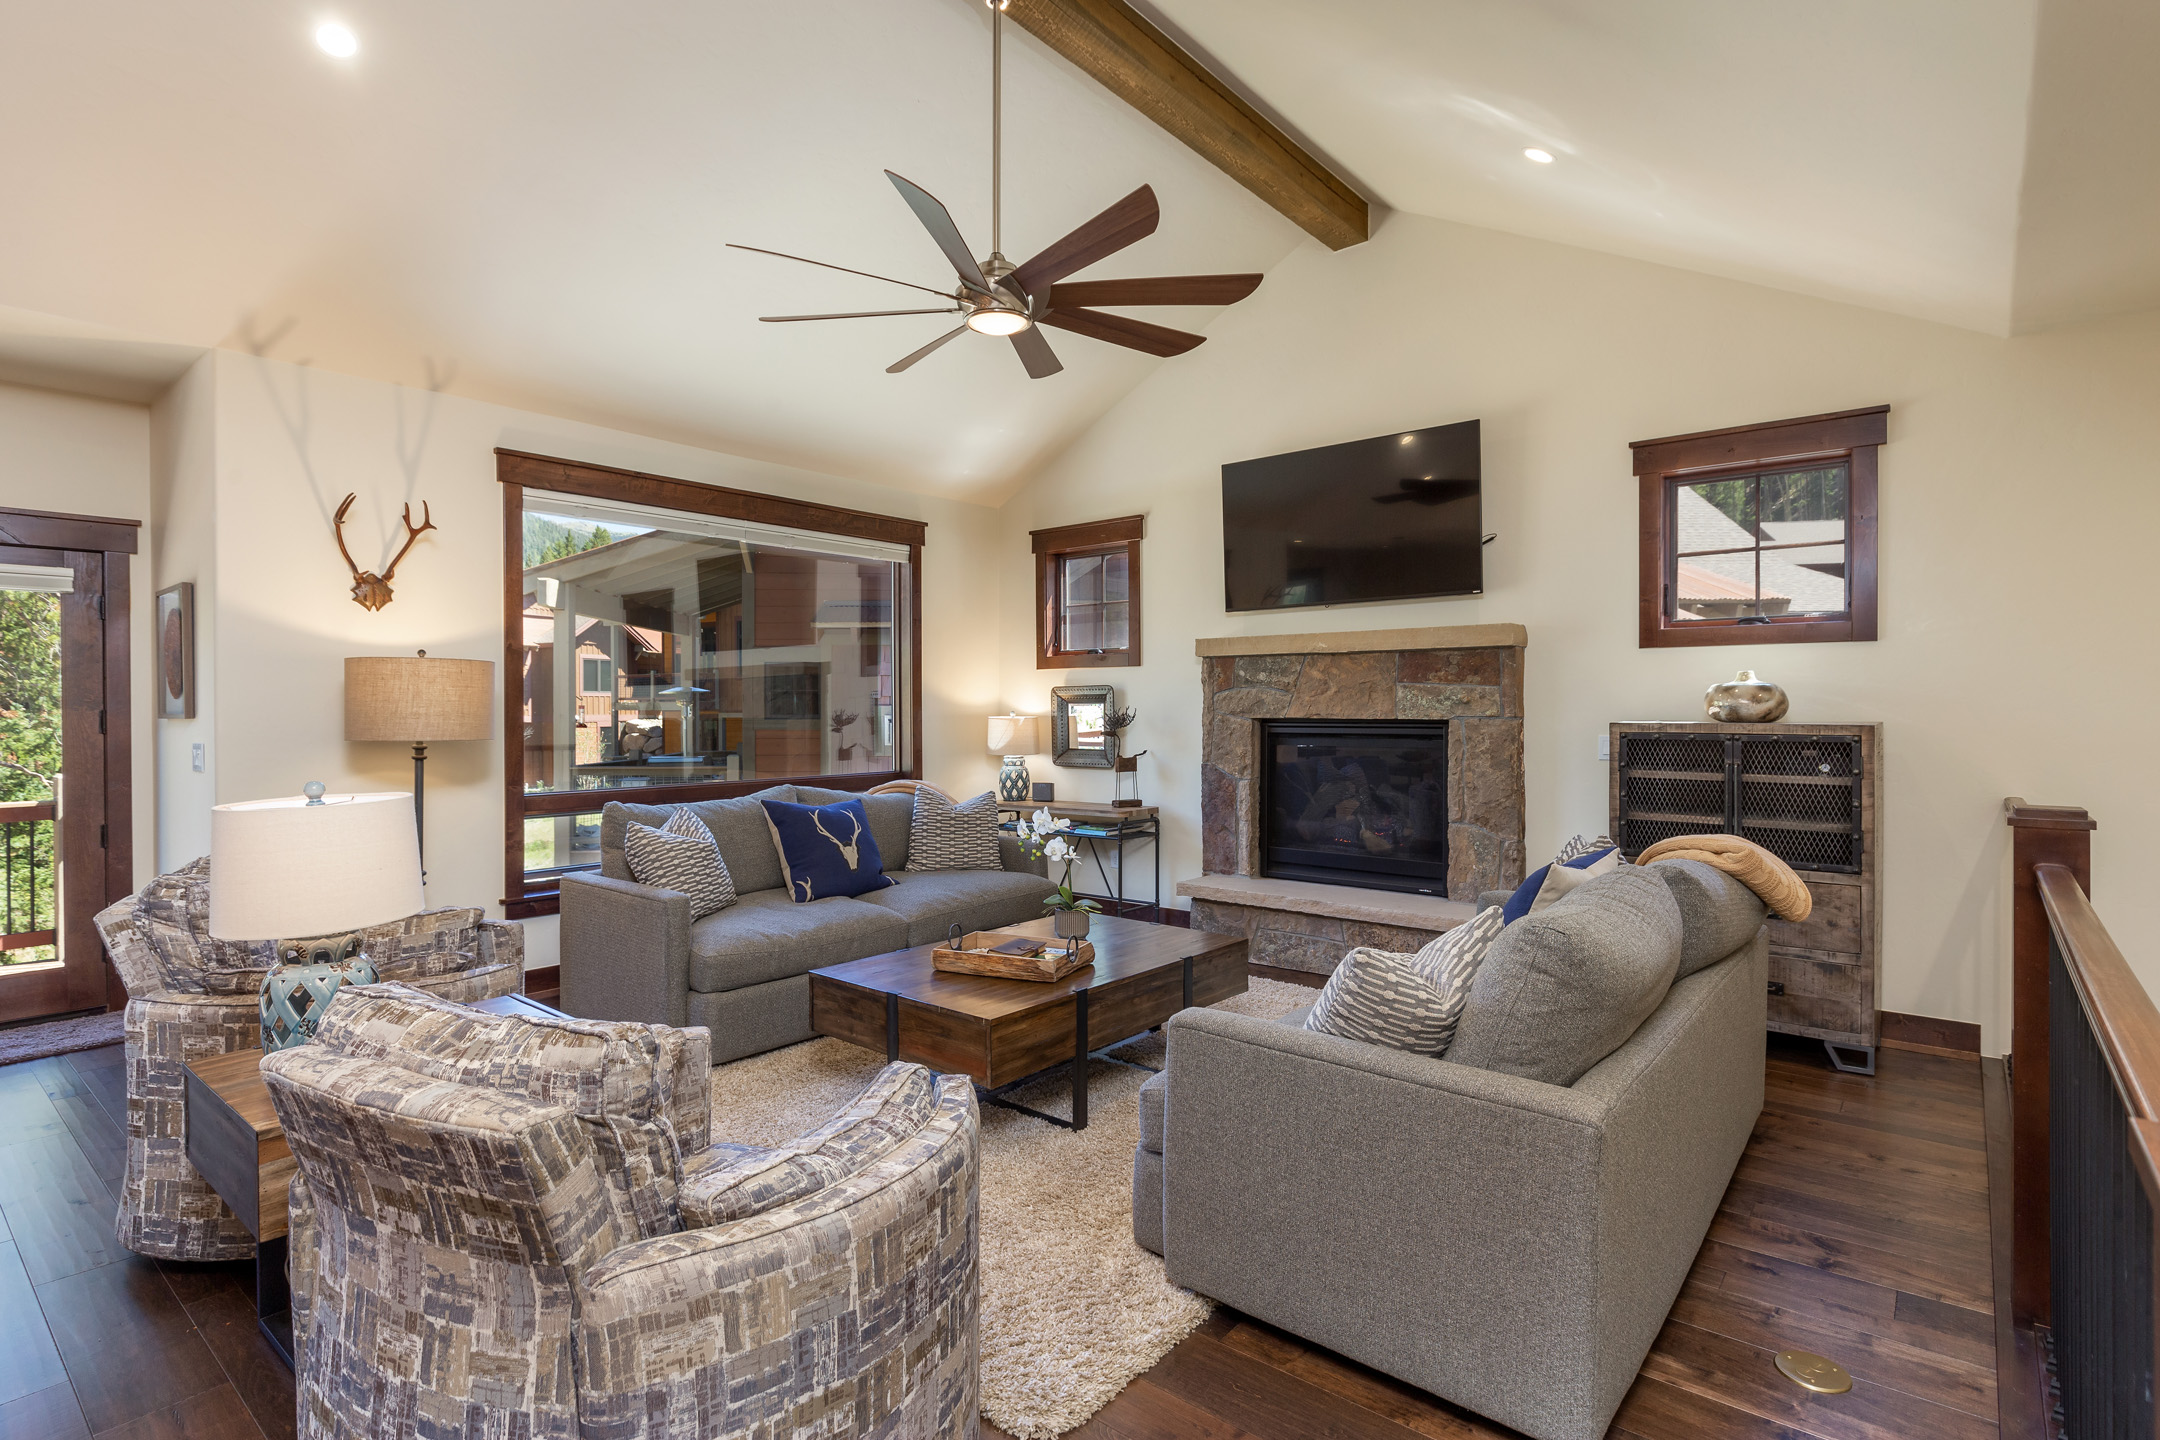 Alders #747: The living room features a stone fireplace that you can enjoy after a long day skiing or exploring Keystone.  The main living room also has large windows to see the stars at night and amazing views during the day.